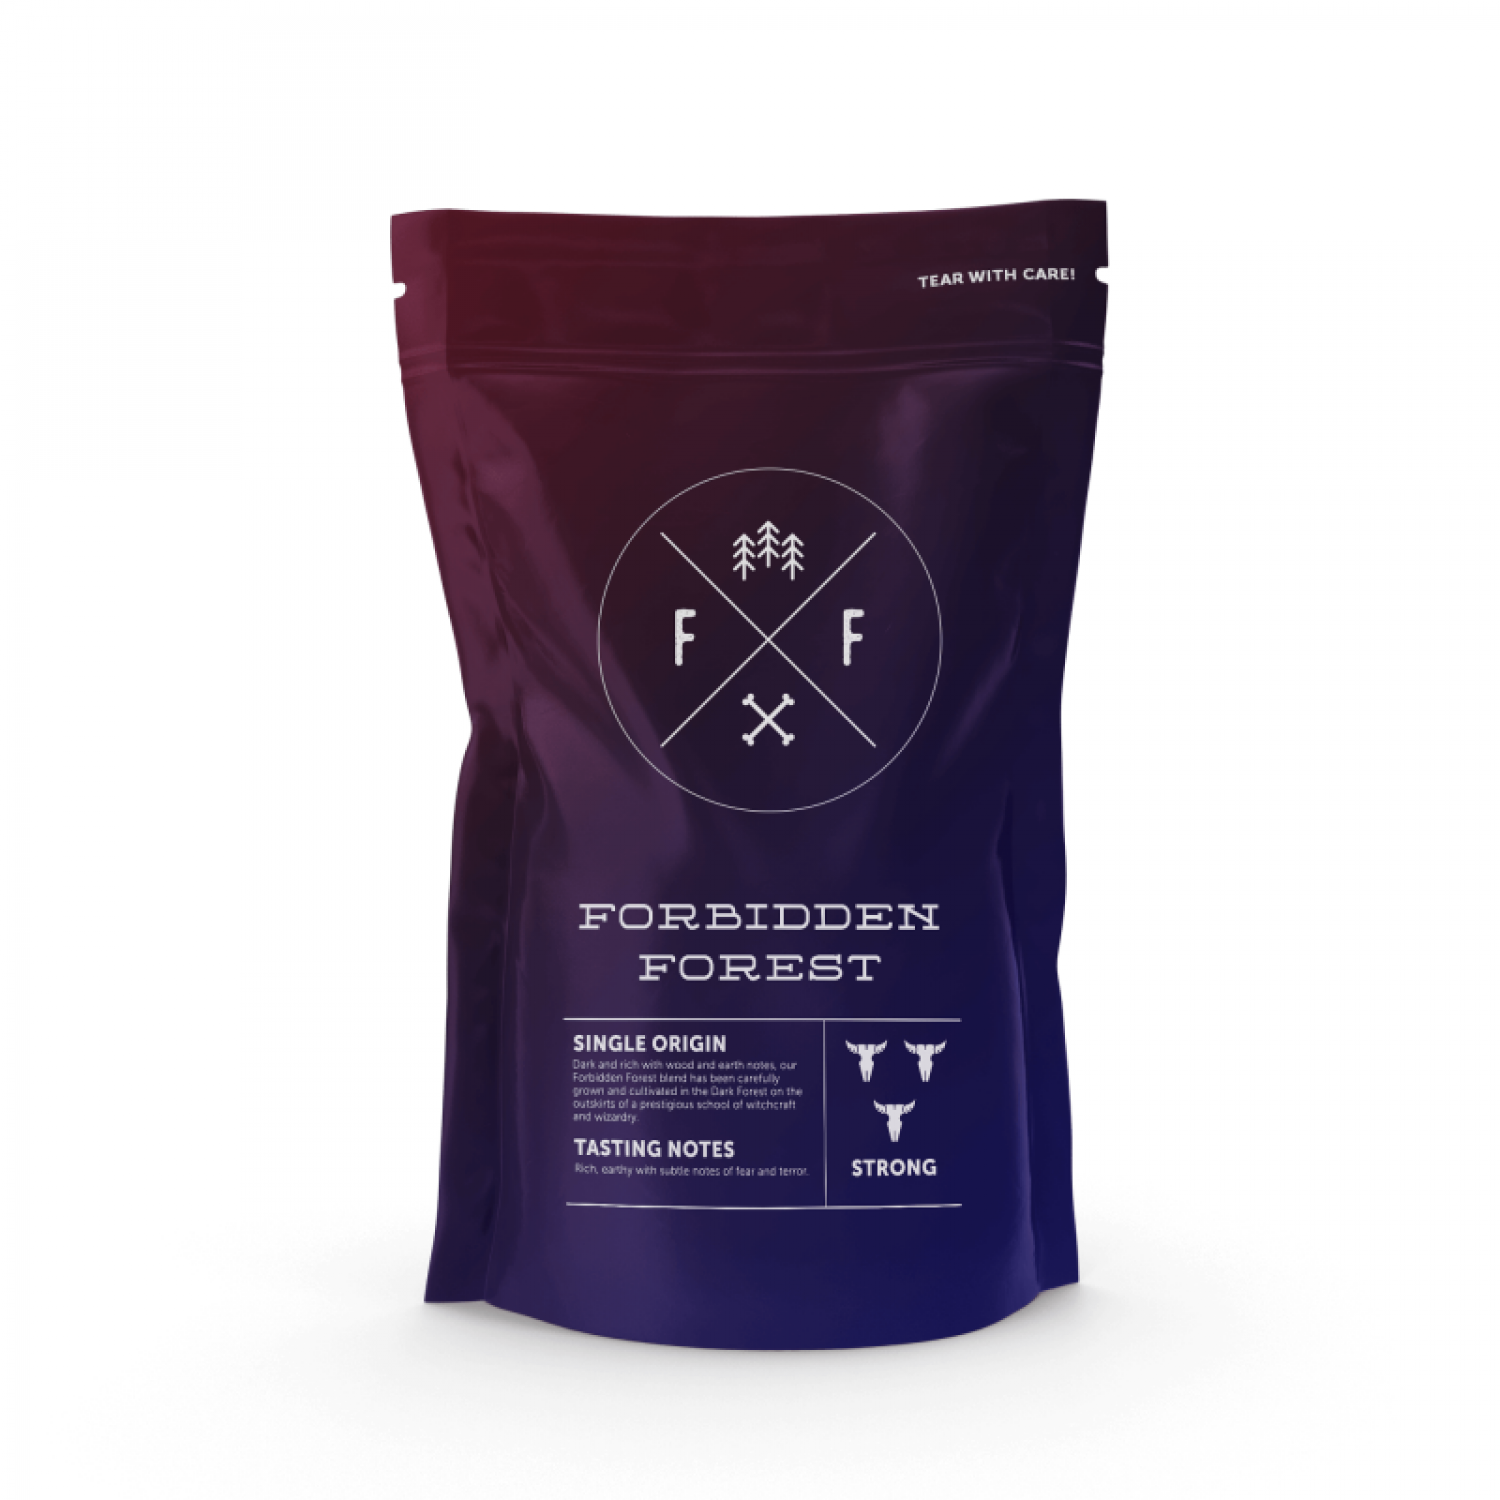 Forbidden Forest Single Origin: Dark & Rich With Notes Of Wood & Earth Infographic